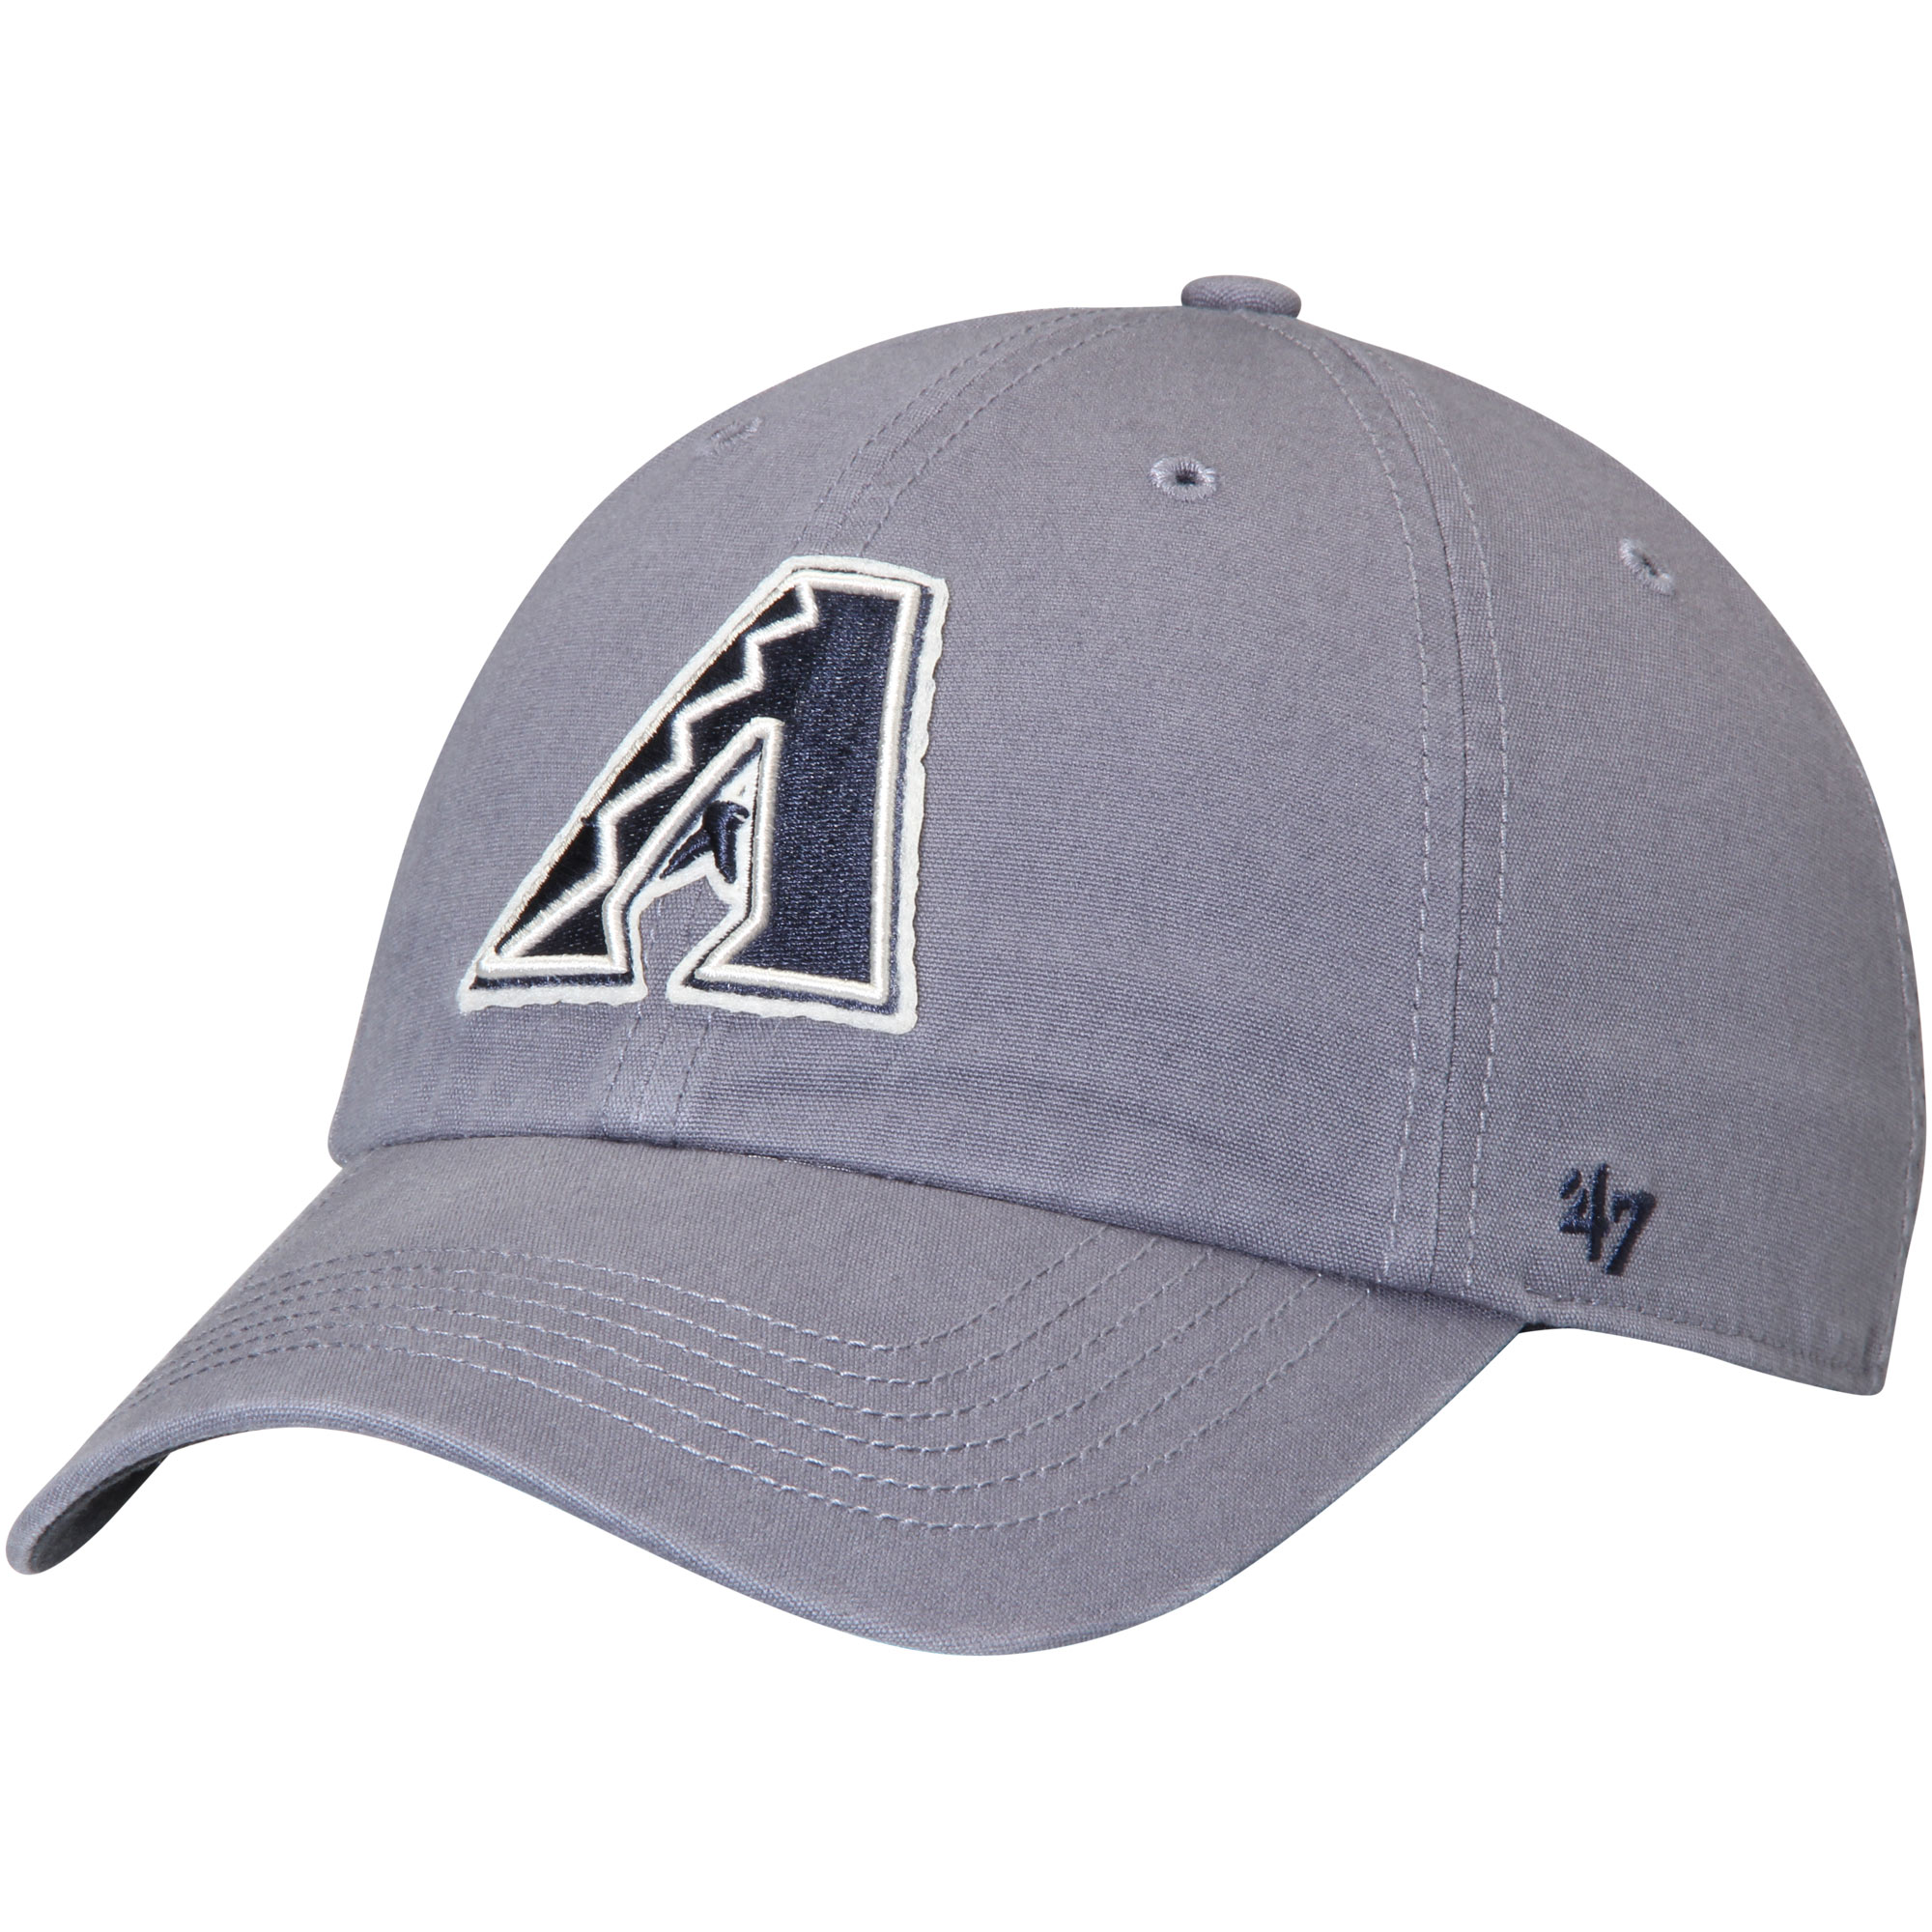 Arizona Diamondbacks '47 Borderland Clean Up Adjustable Hat - Navy - OSFA